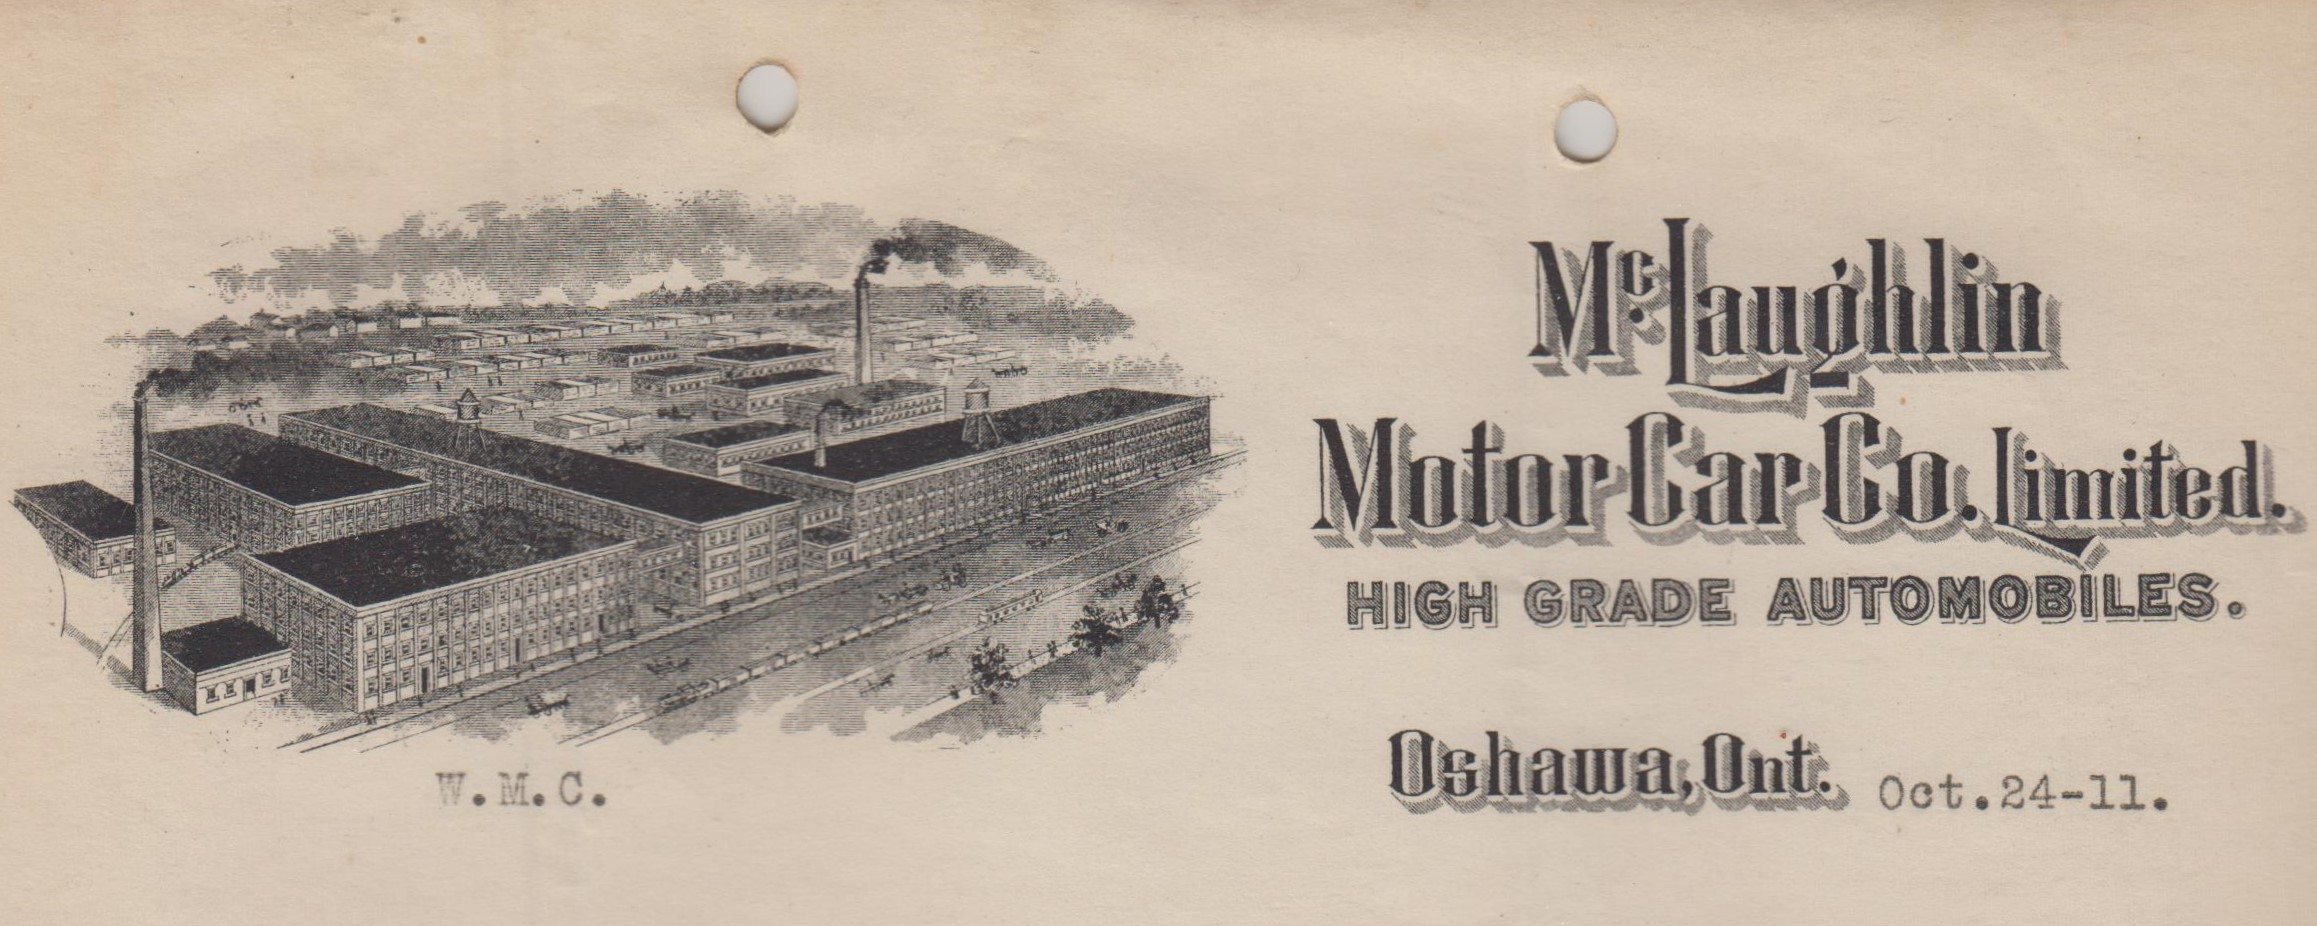 McLaughlin Motor Car Co. Ltd. letterhead, Osahwa, Ontario, 1911. Collection of the Oshawa Public Libraries.